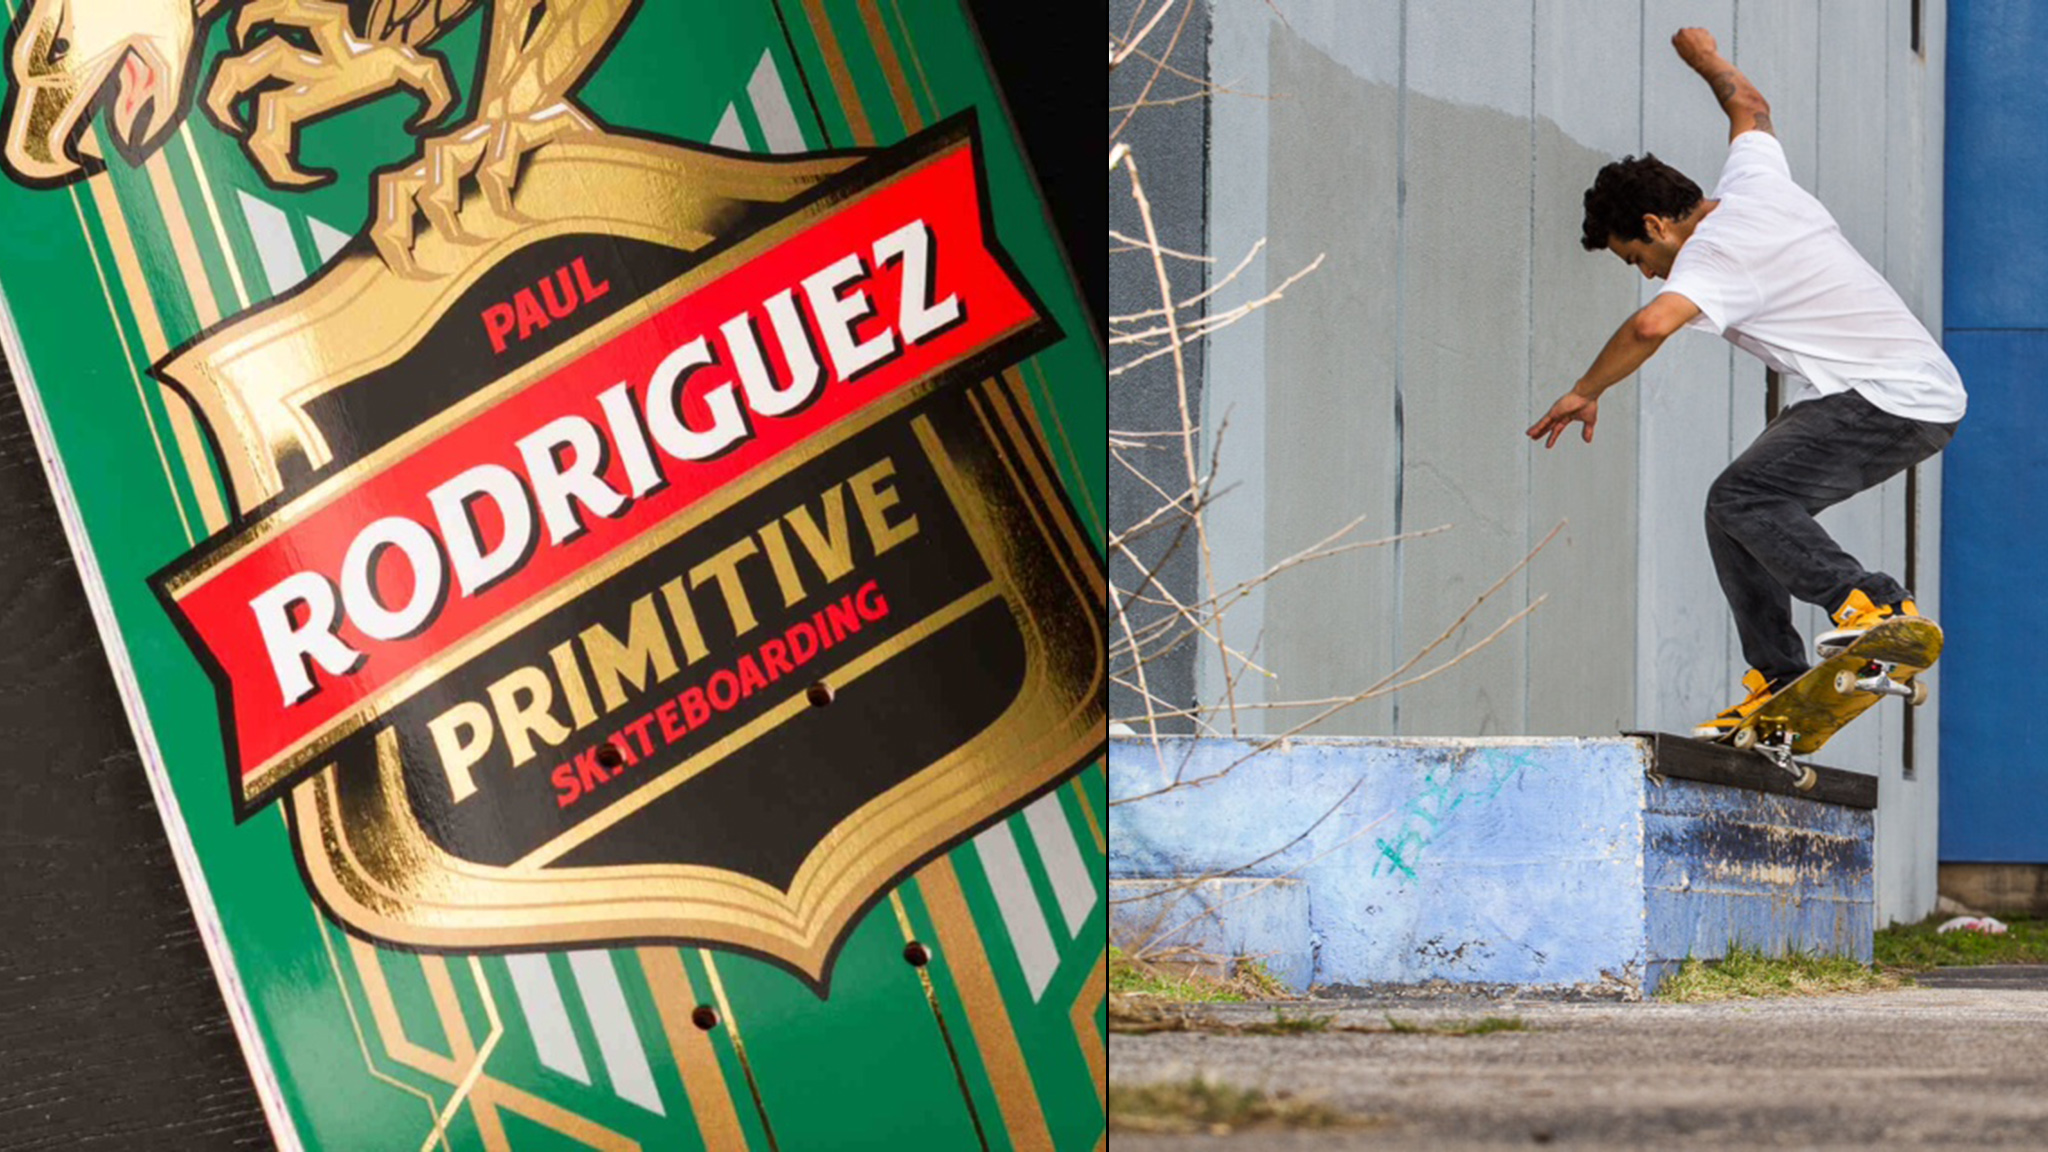 Paul Rodriguez Launches Primitive Skateboarding Brand